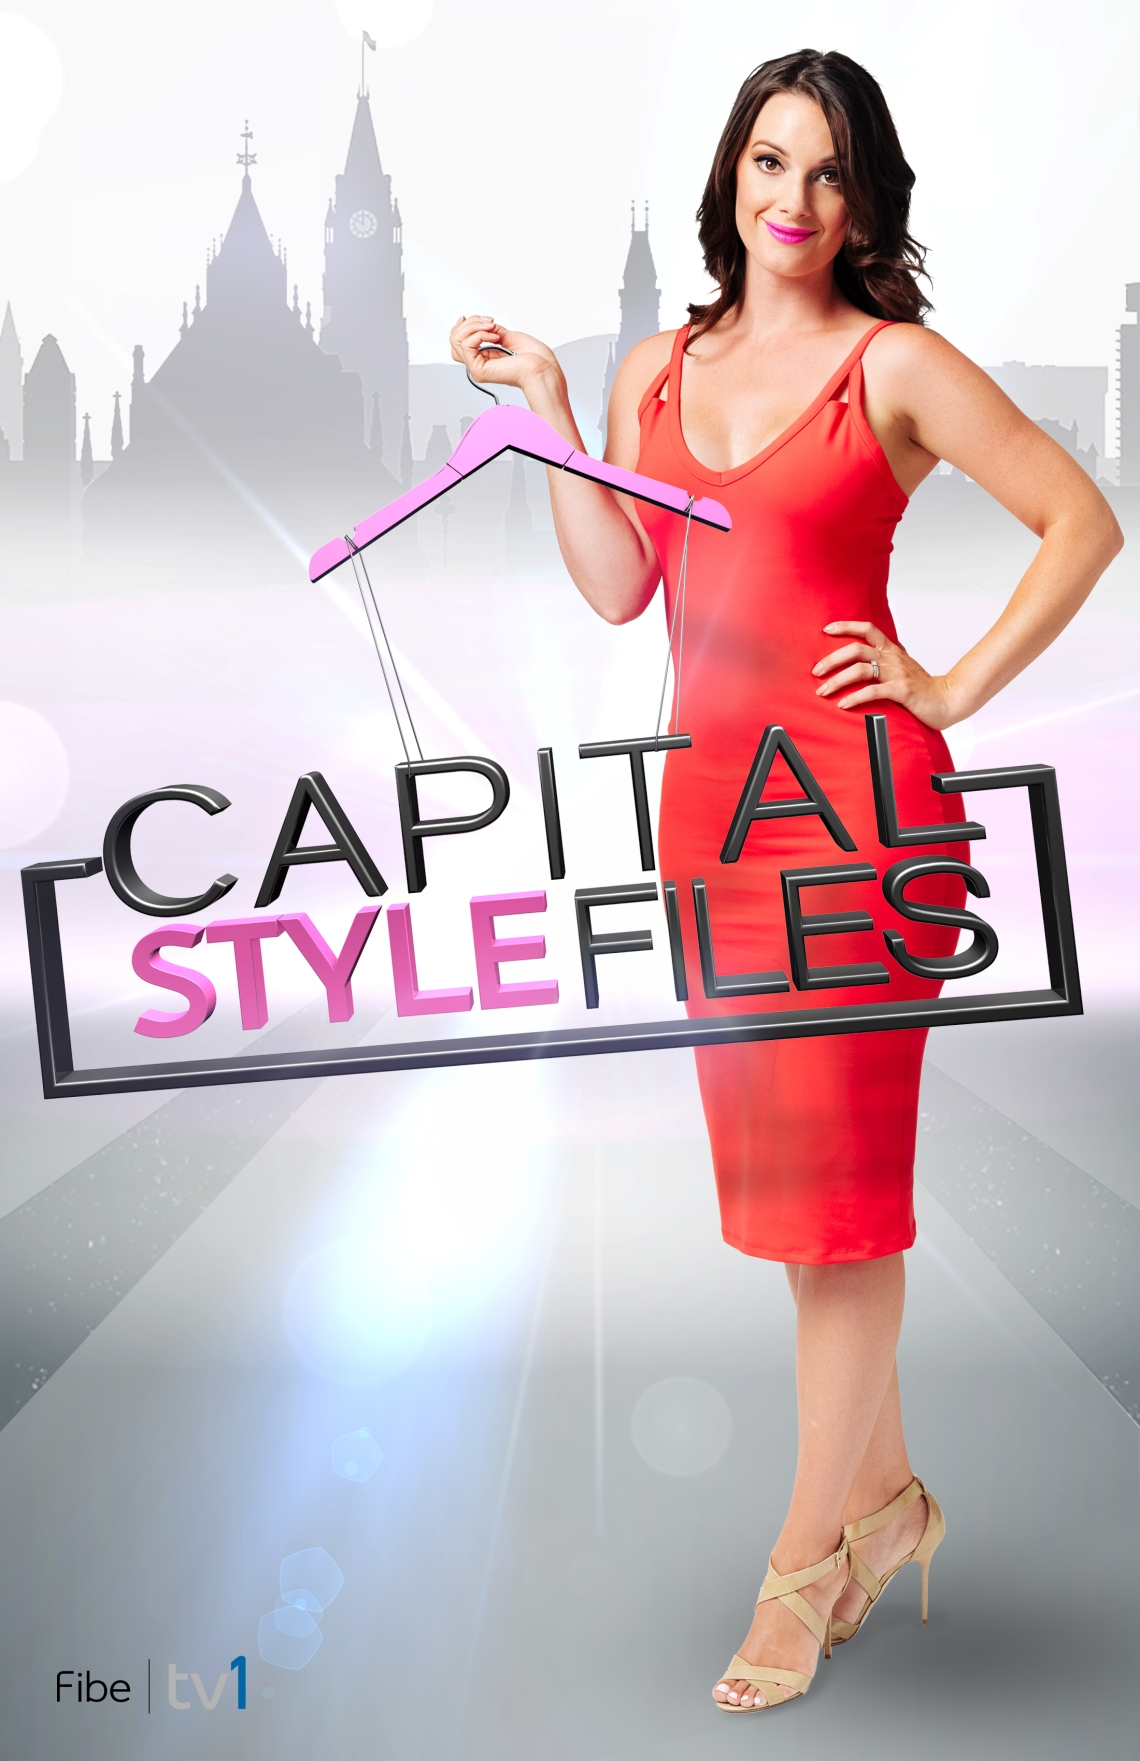 capital-style-files-tv-show-official-poster-katrina-turnbull-bell-media-fibe-tv1